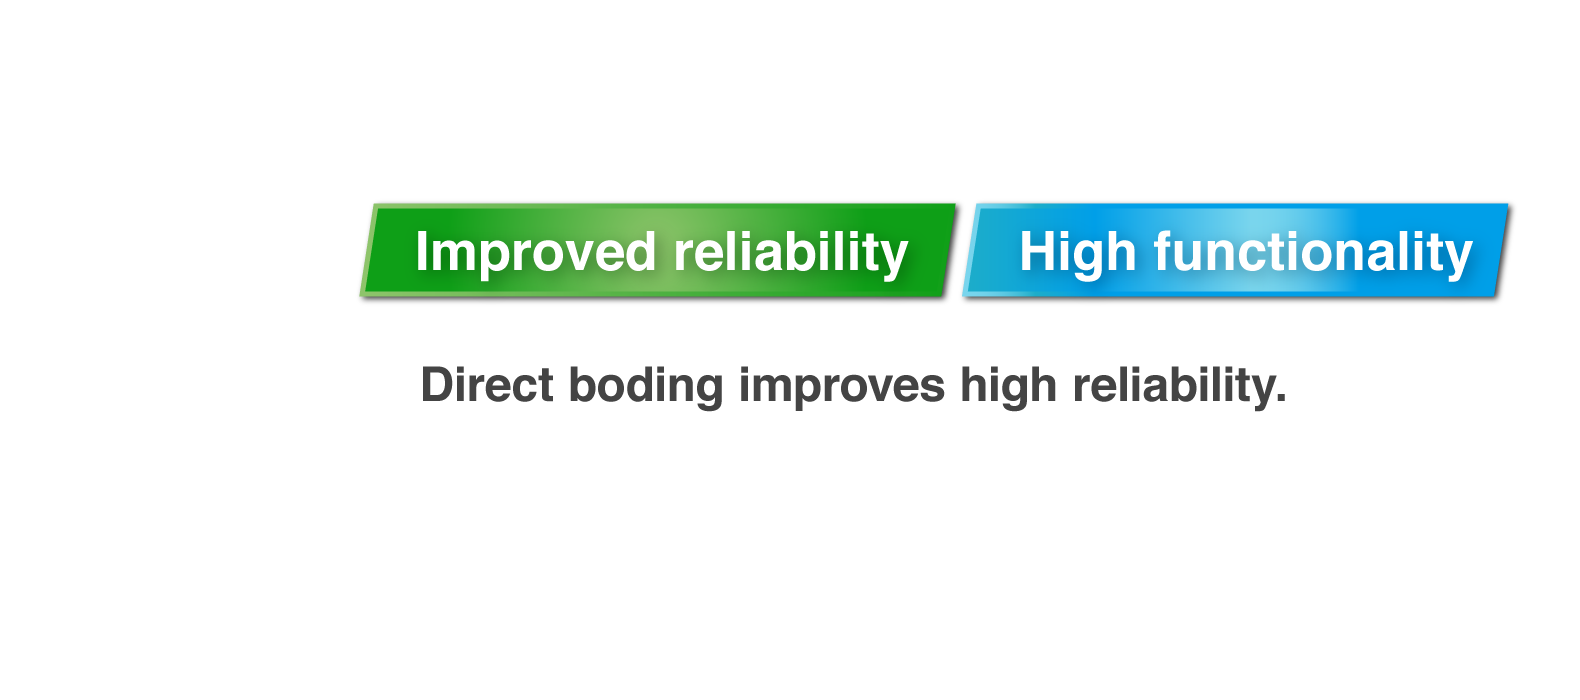 Direct boding improves high reliability.